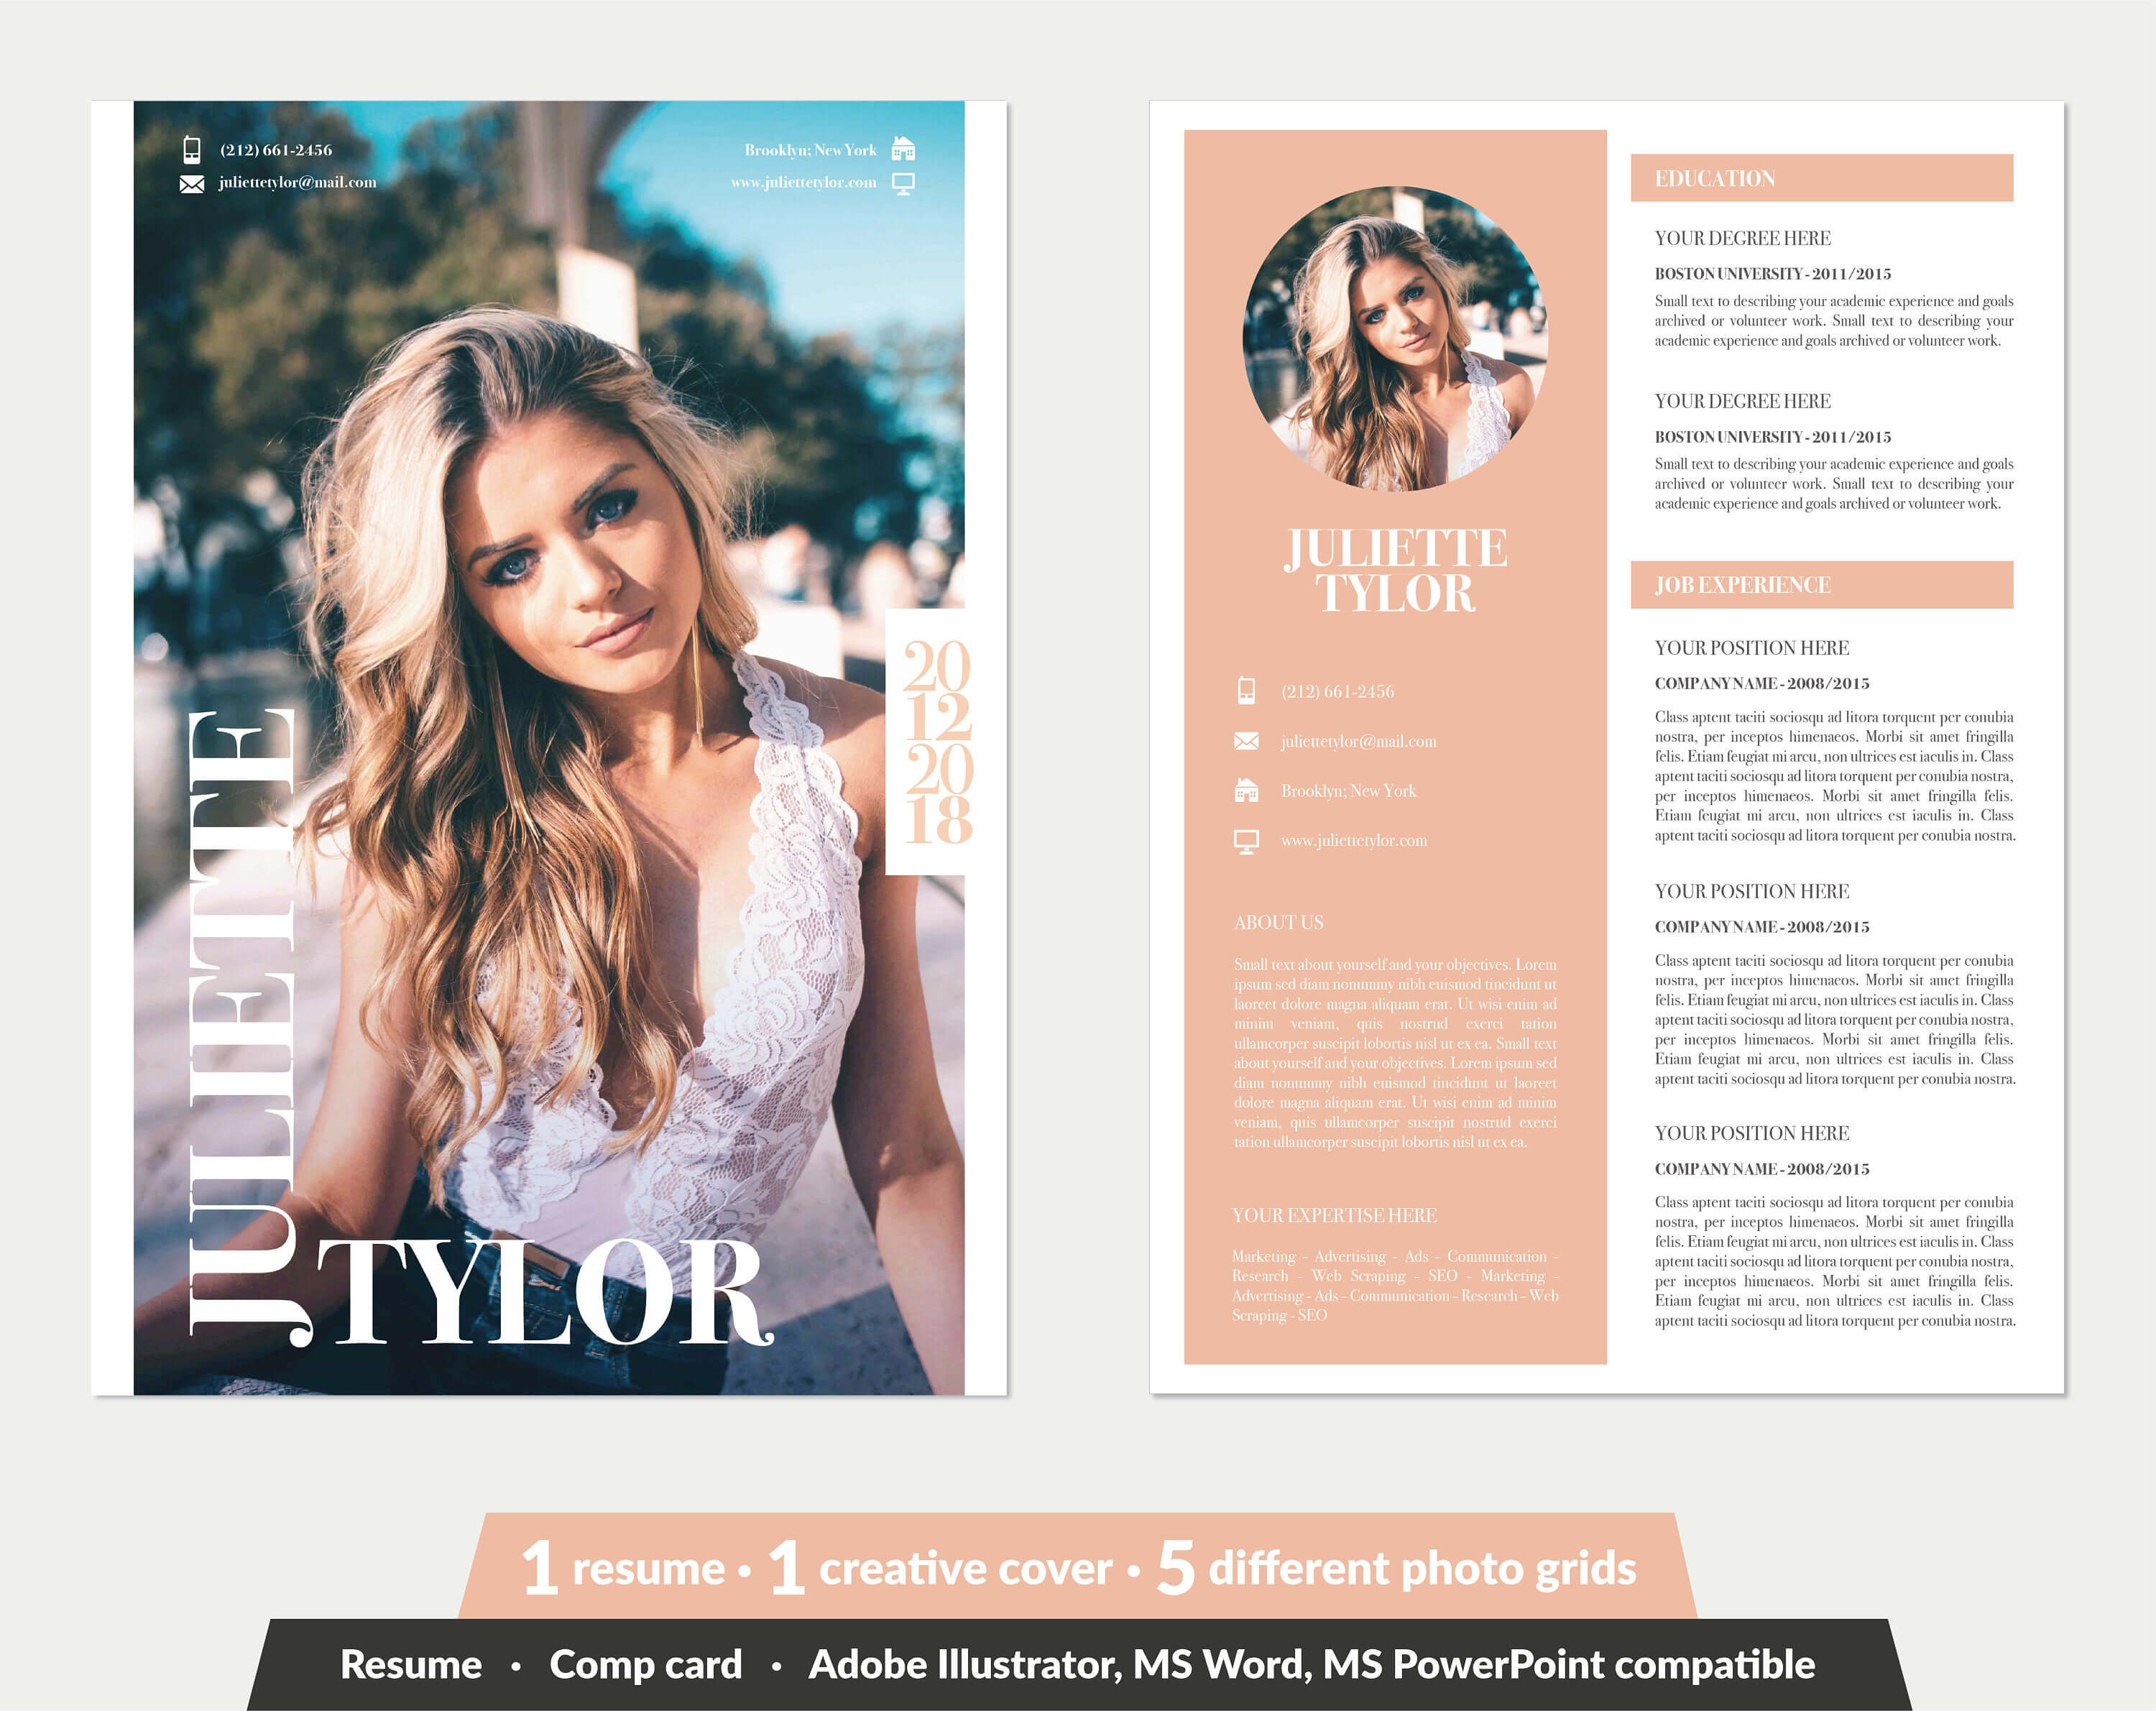 Modeling Comp Card | Fashion Model Comp Card Template (5 Different Grid  Layout) | Word, Powerpoint, Illustrator | Instant Download with Comp Card Template Download